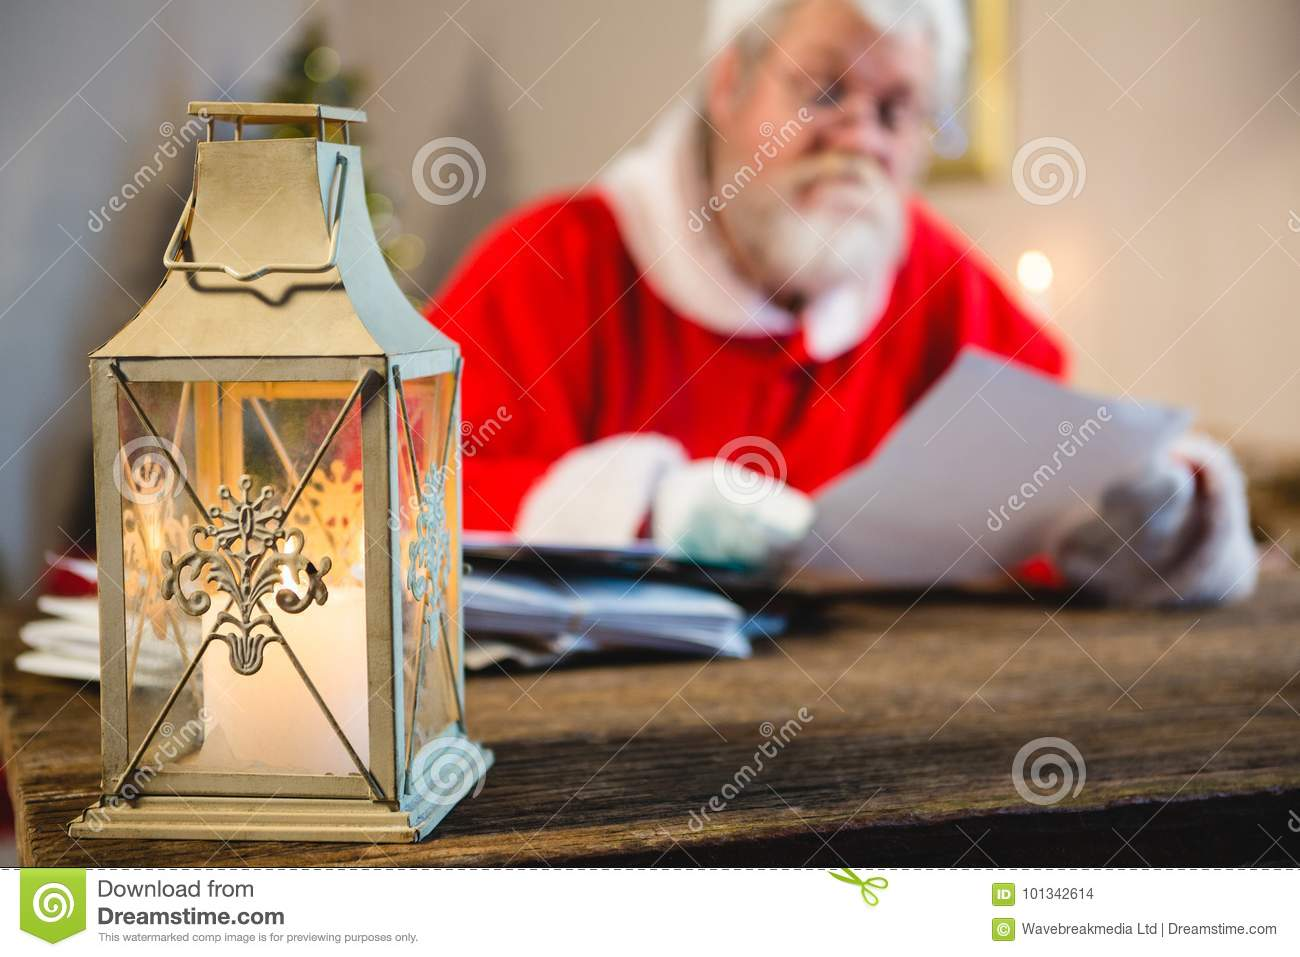 Christmas lantern and Santa Claus in background